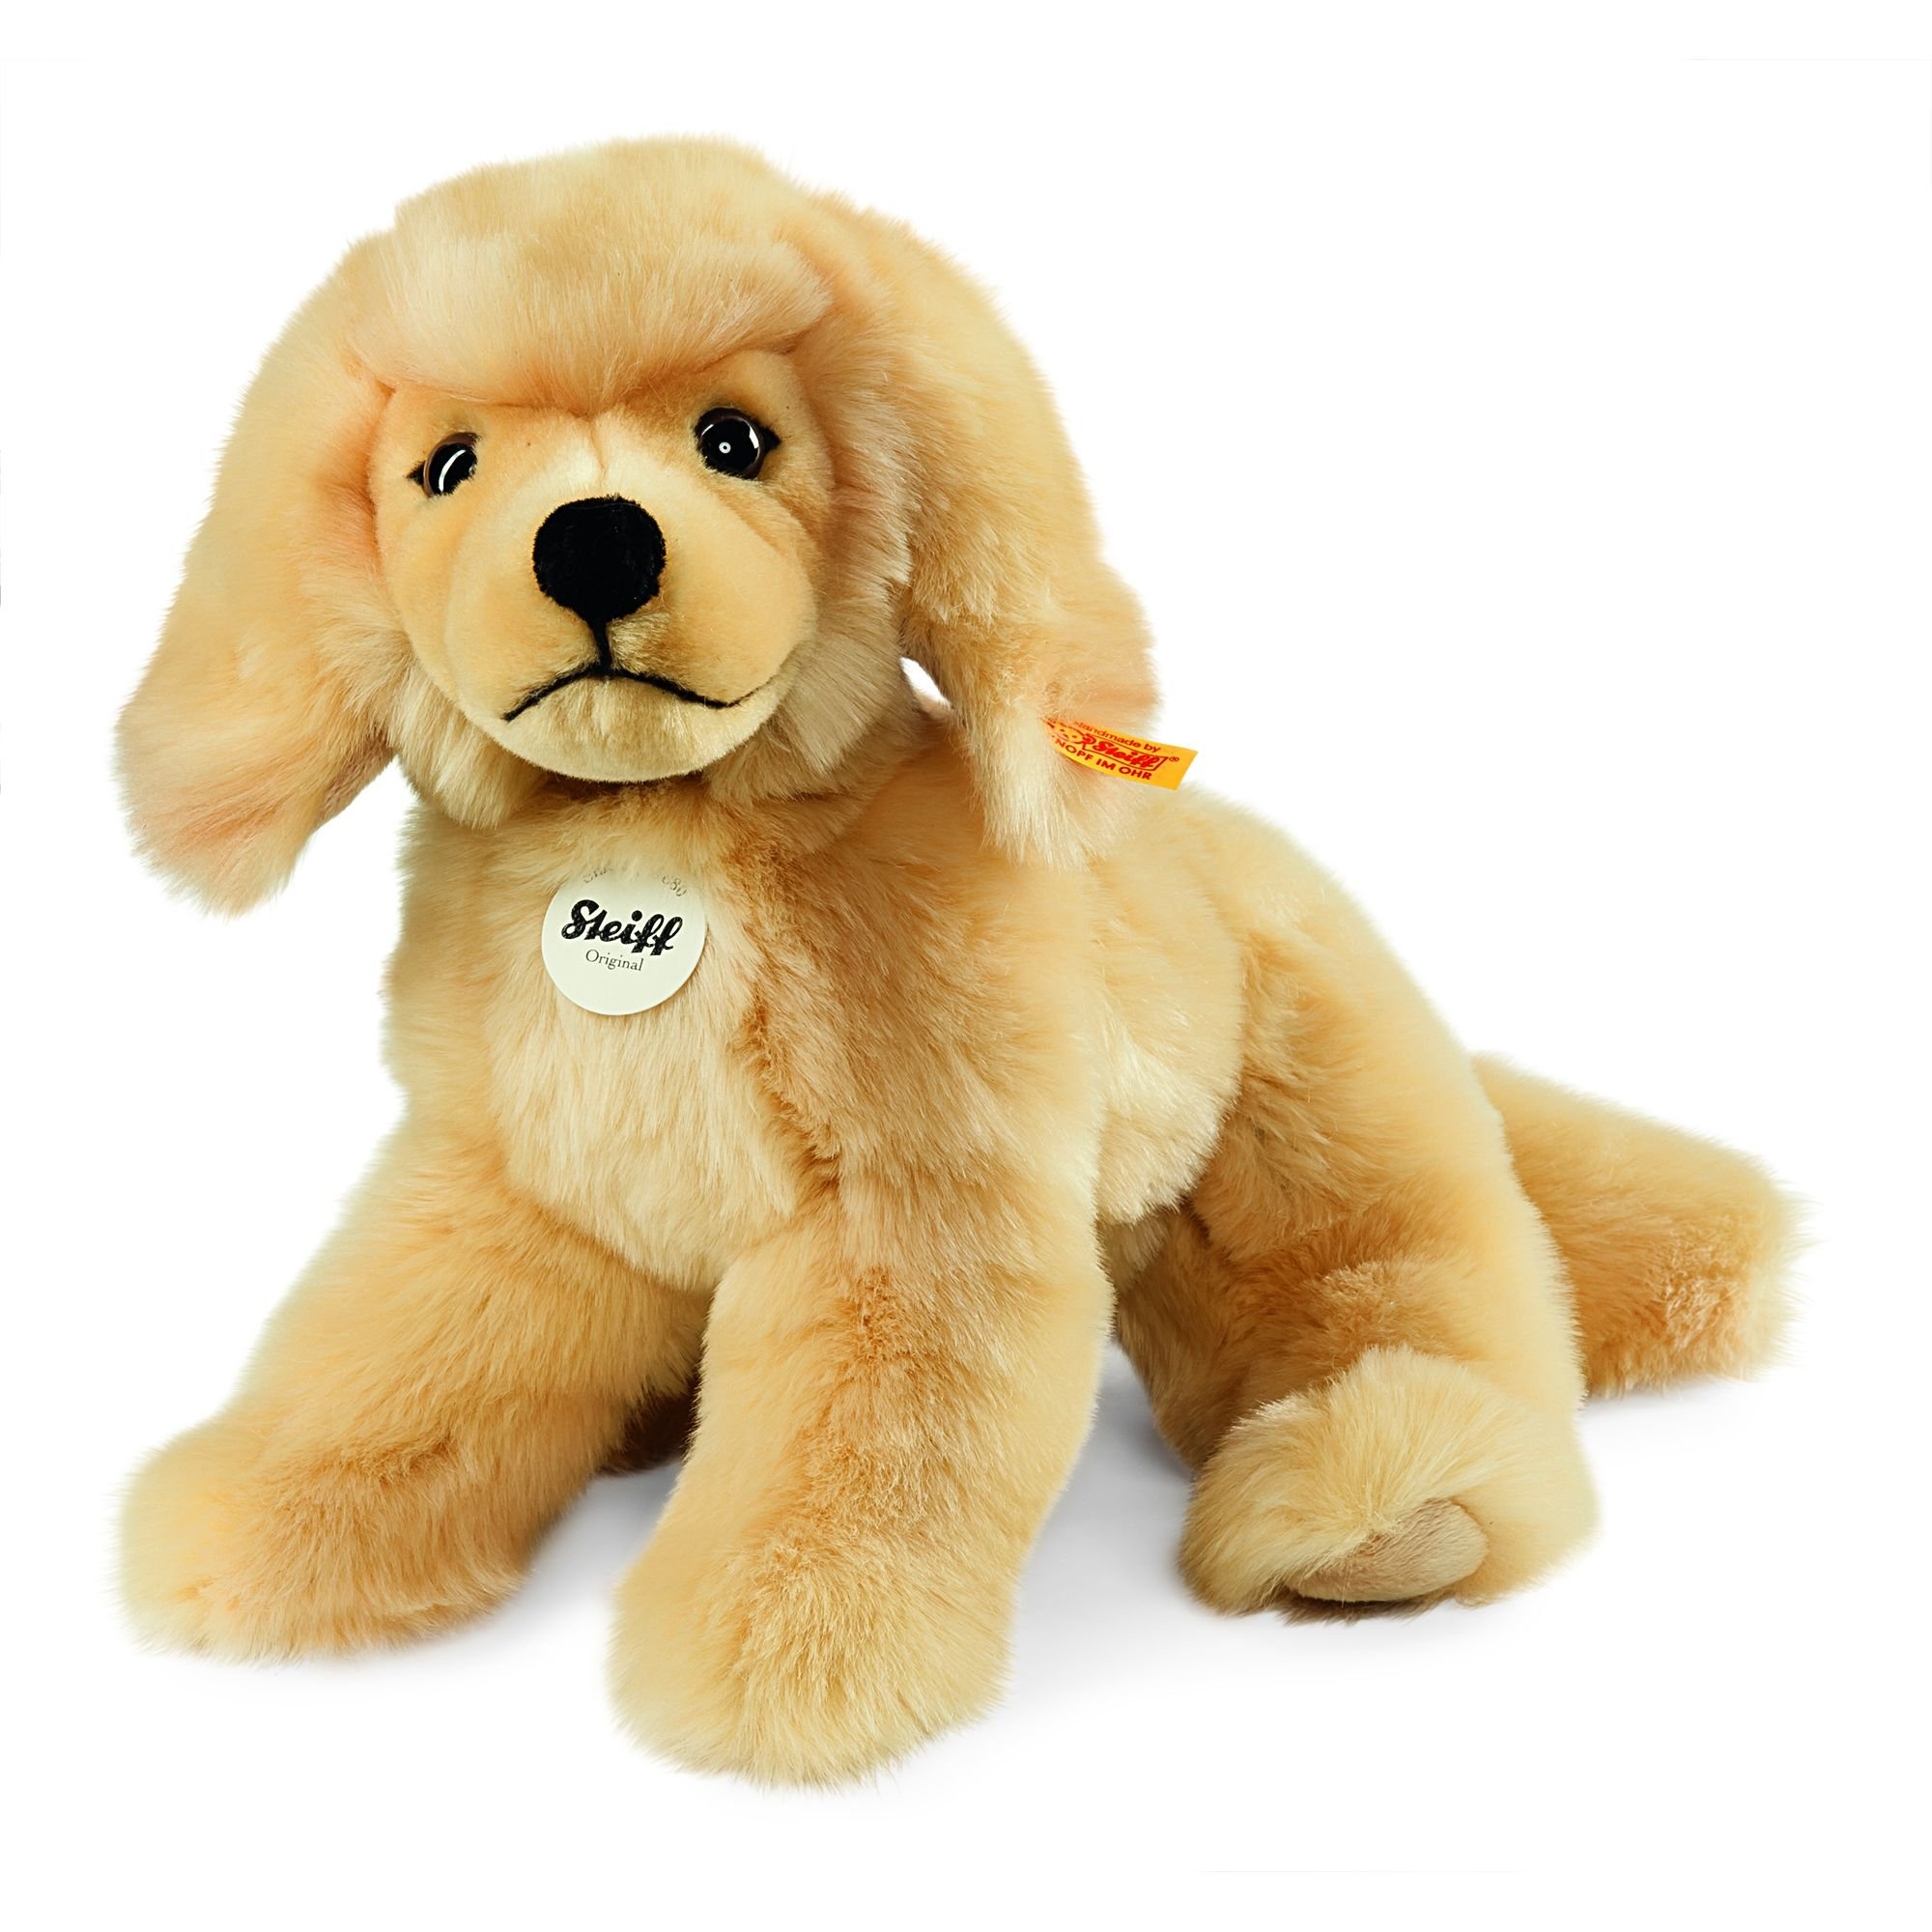 Steiff Lenni Golden Retriever by Steiff